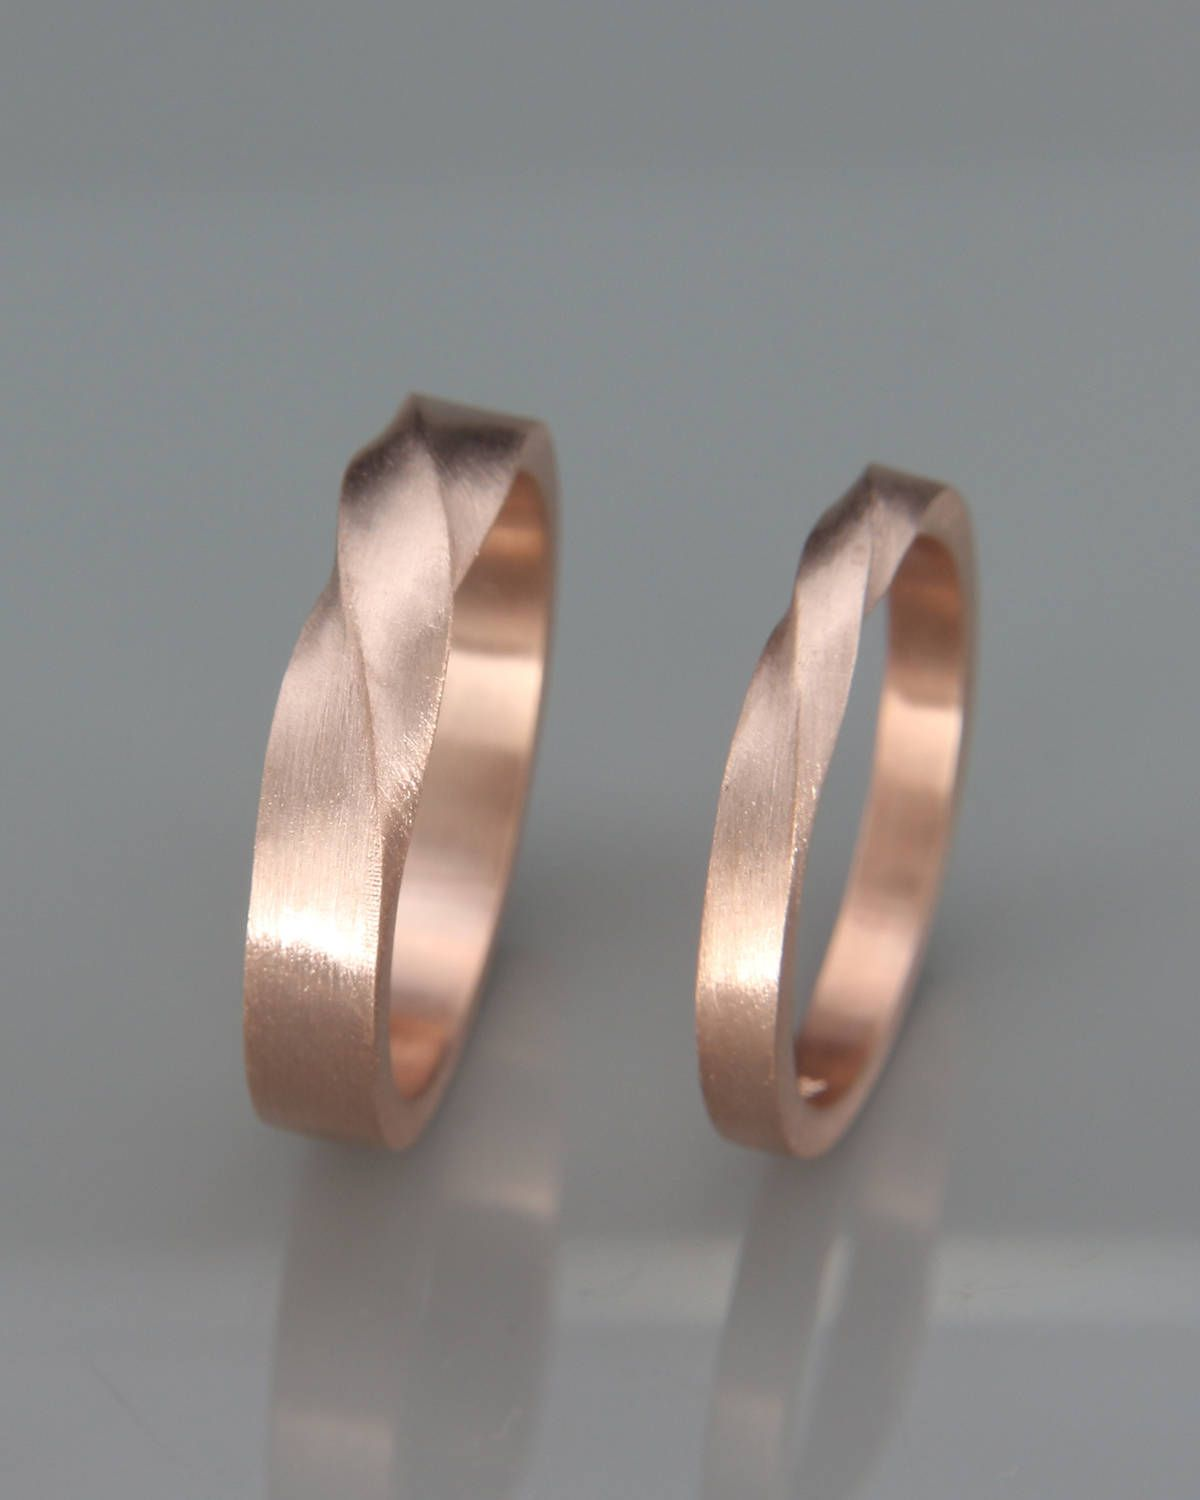 Photo of Matching Mobius wedding rings | His and Hers Mobius Wedding Rings Set | 1